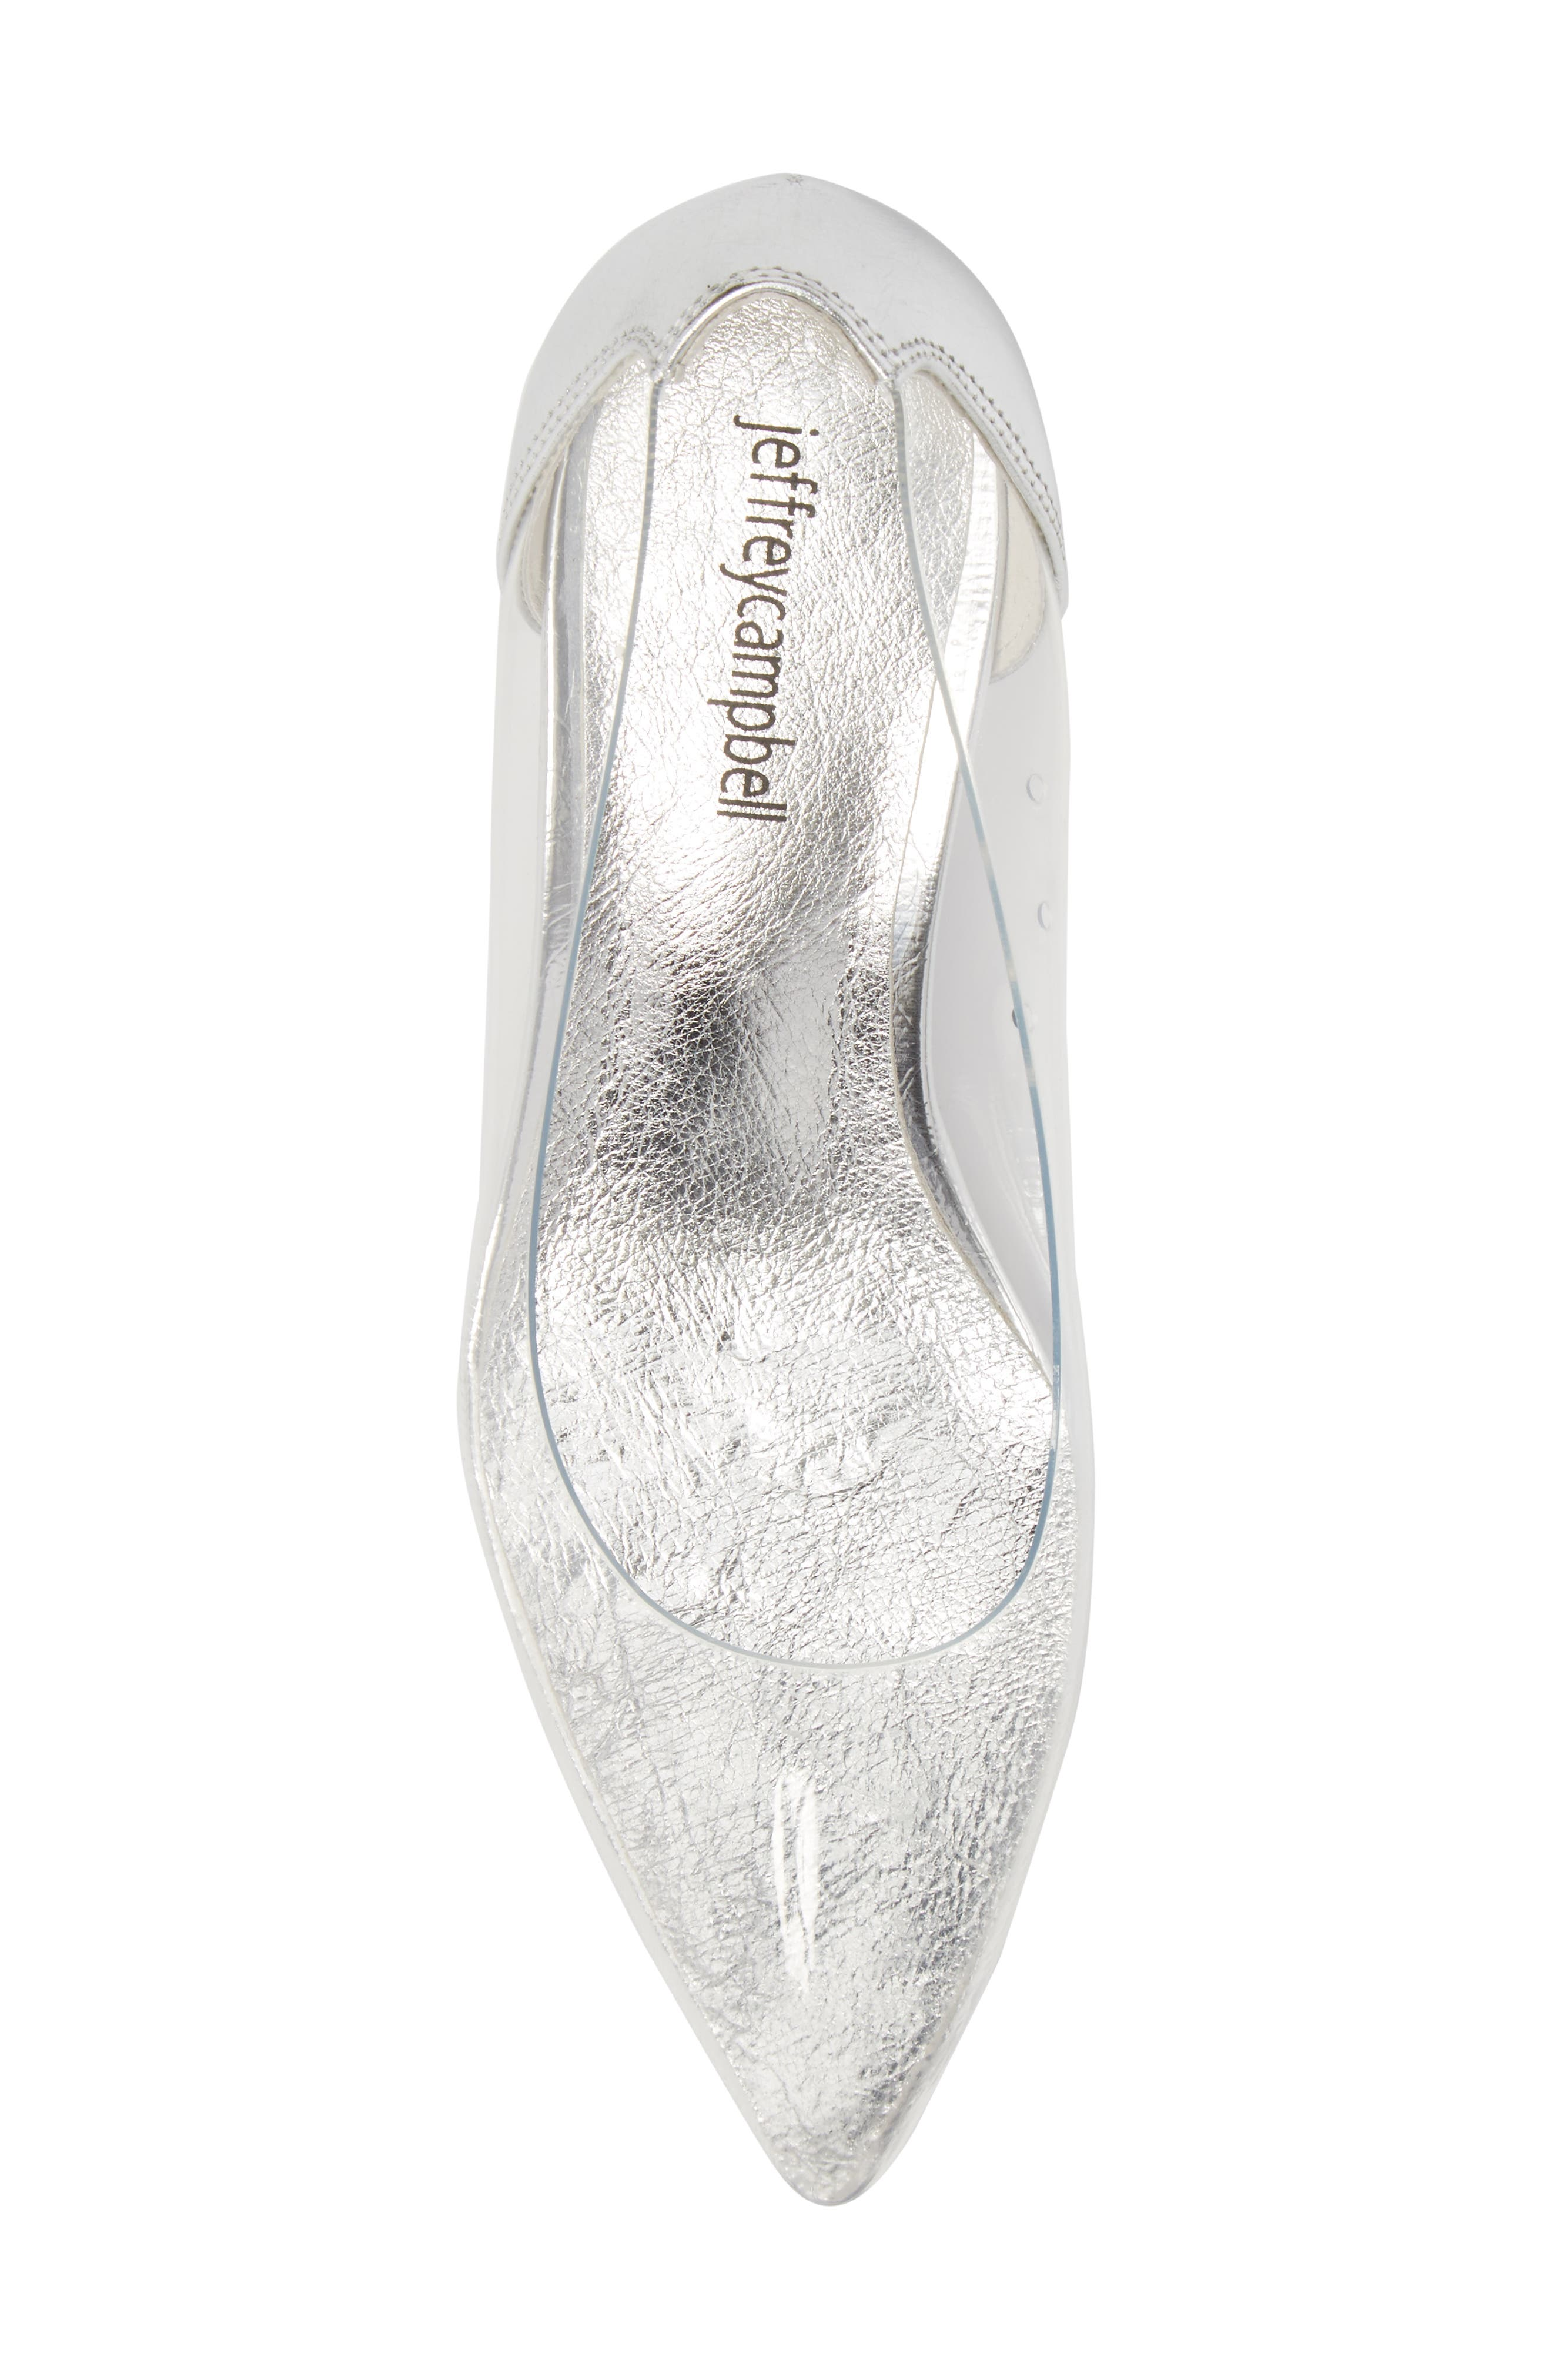 Gracienne Transparent Pump,                             Alternate thumbnail 5, color,                             CLEAR/ SILVER LEATHER